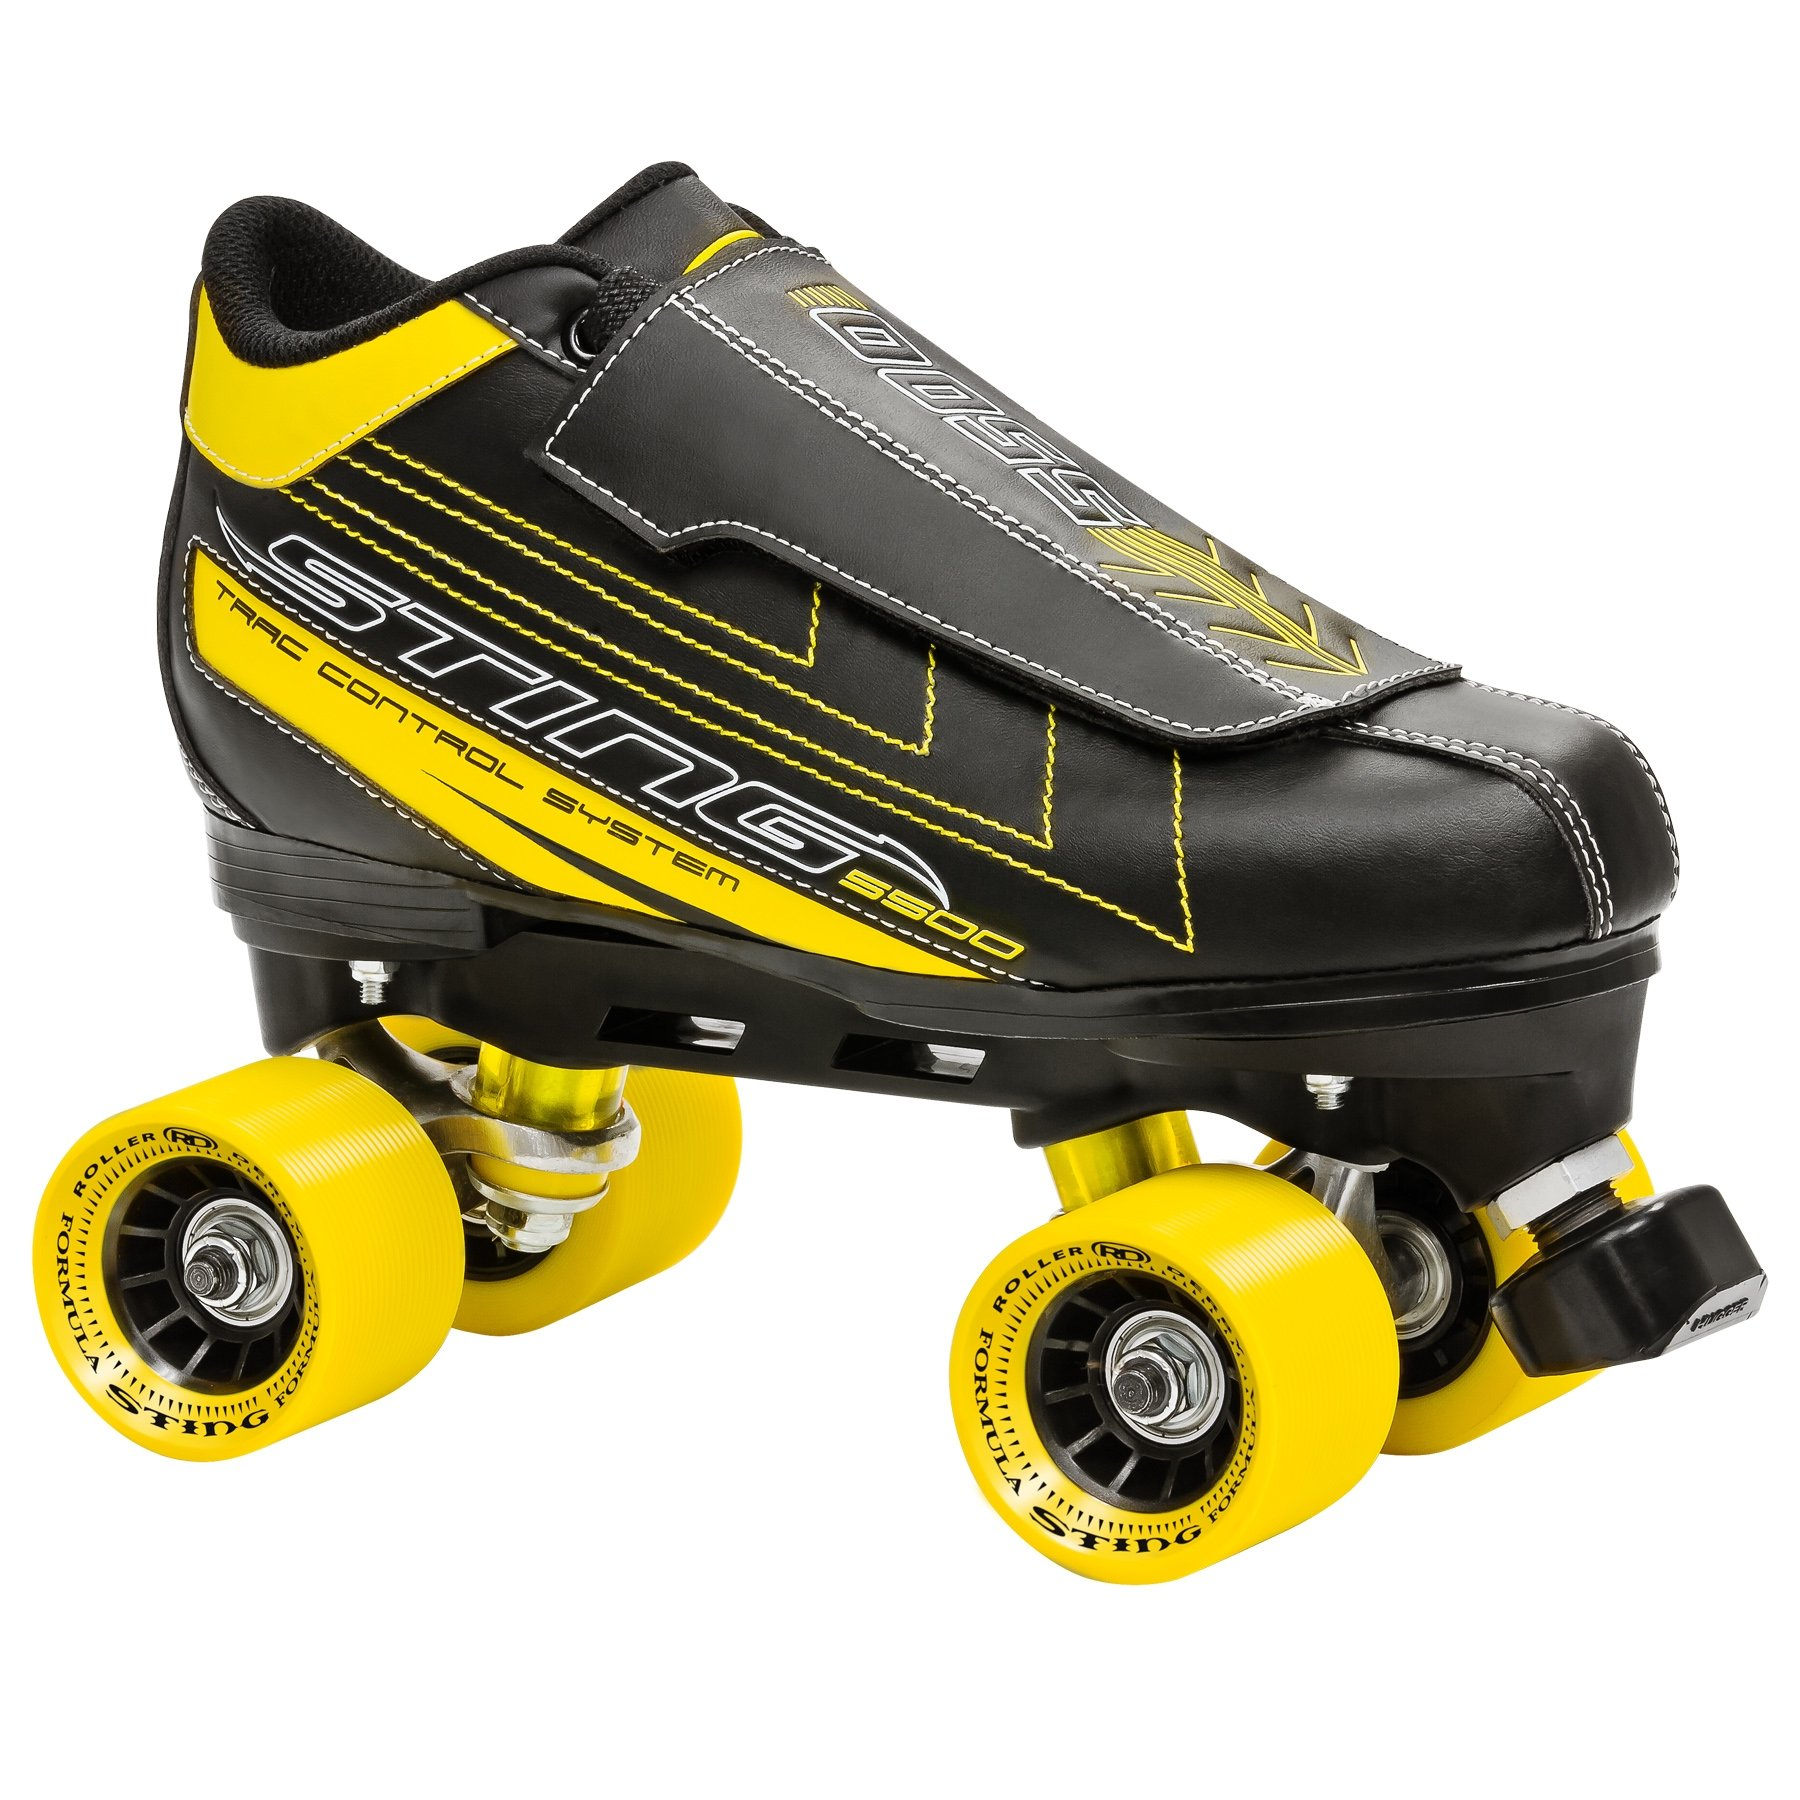 Roller Derby Men's Sting 5500 Quad Roller Skate, Black/Yellow, 7